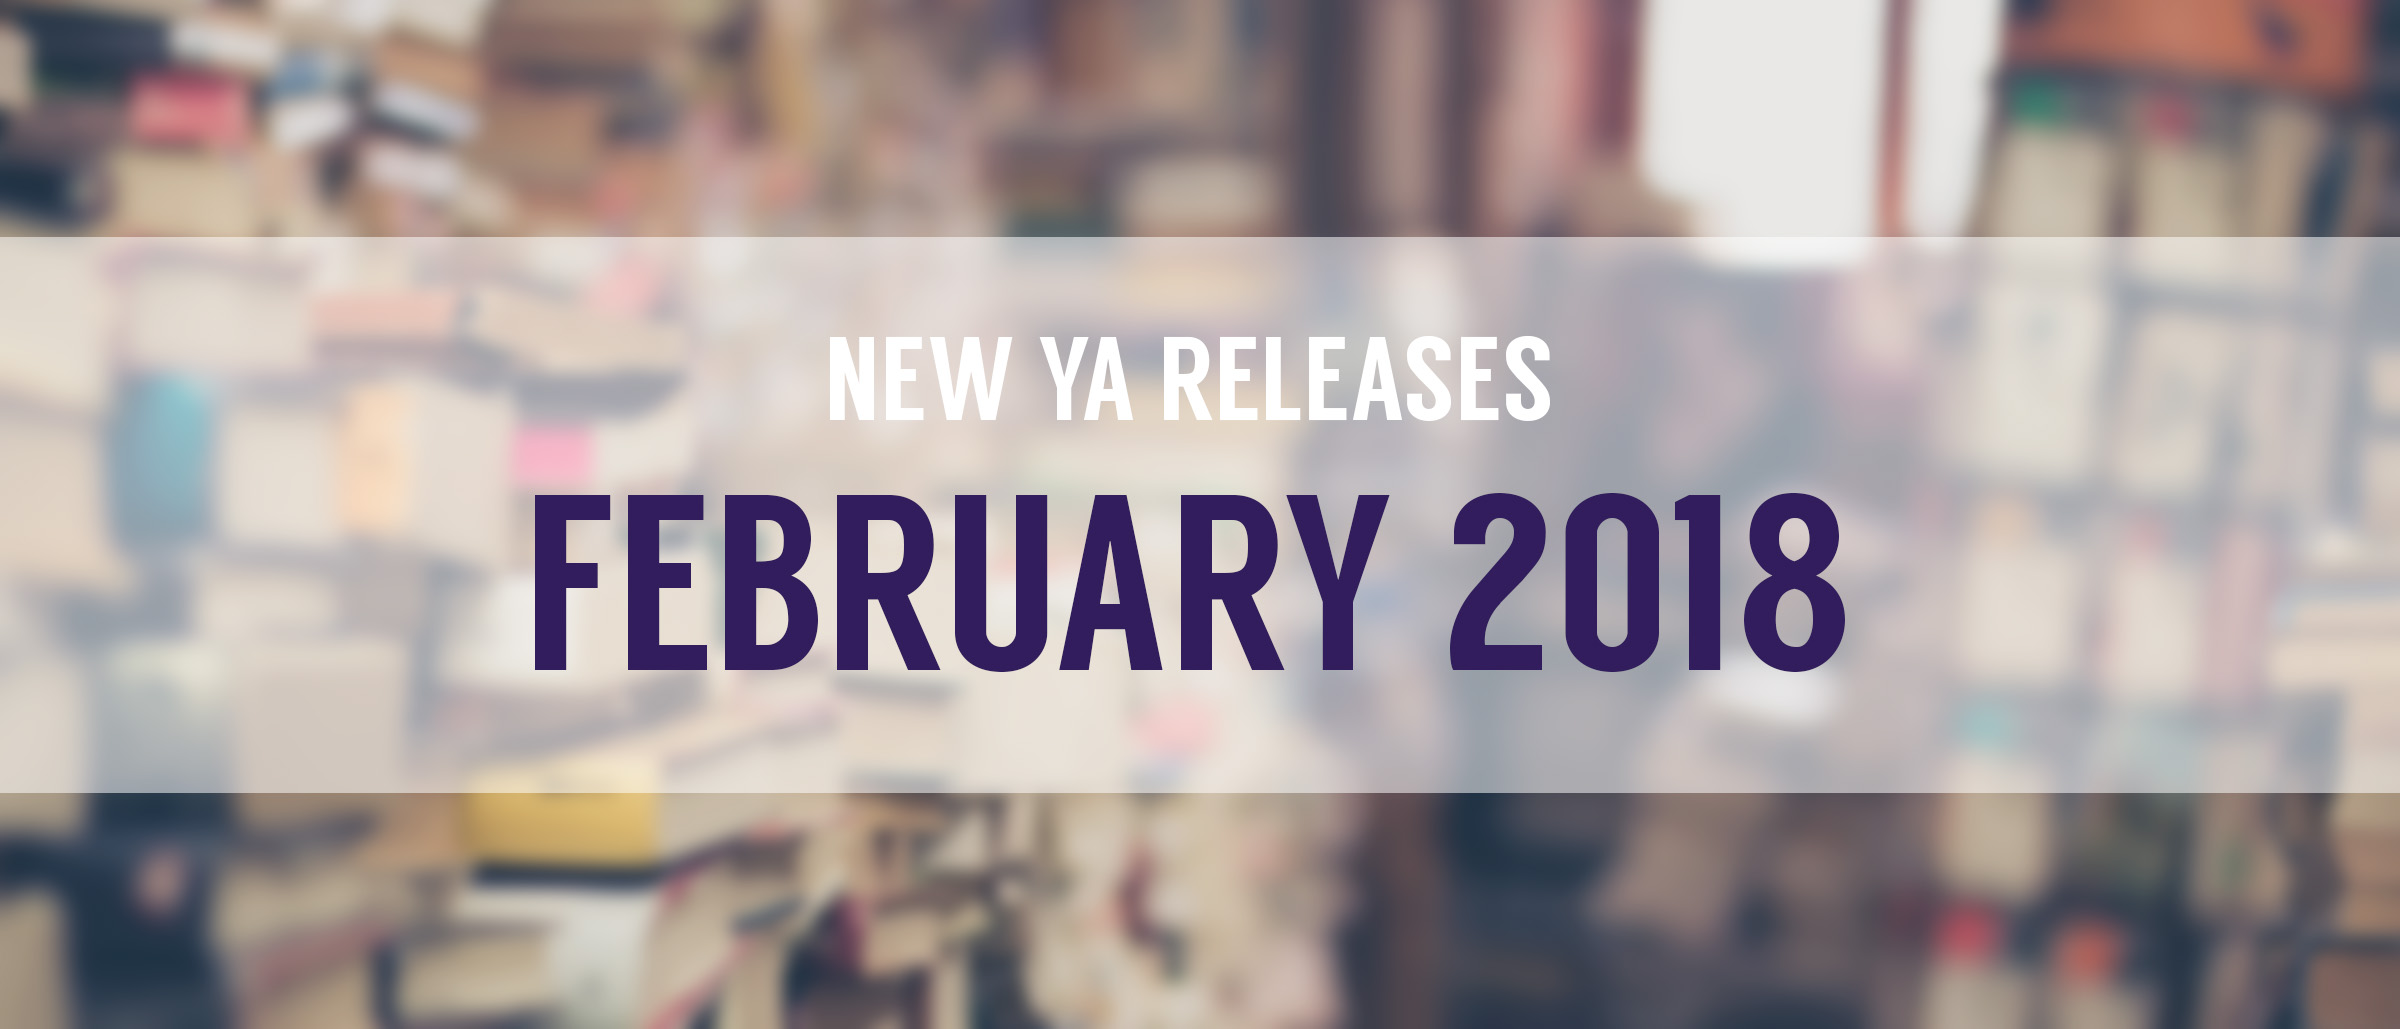 february new books, february books, february book releases, february 2018 book releases, new ya books, february ya books, february new ya books, february book releases 2018,